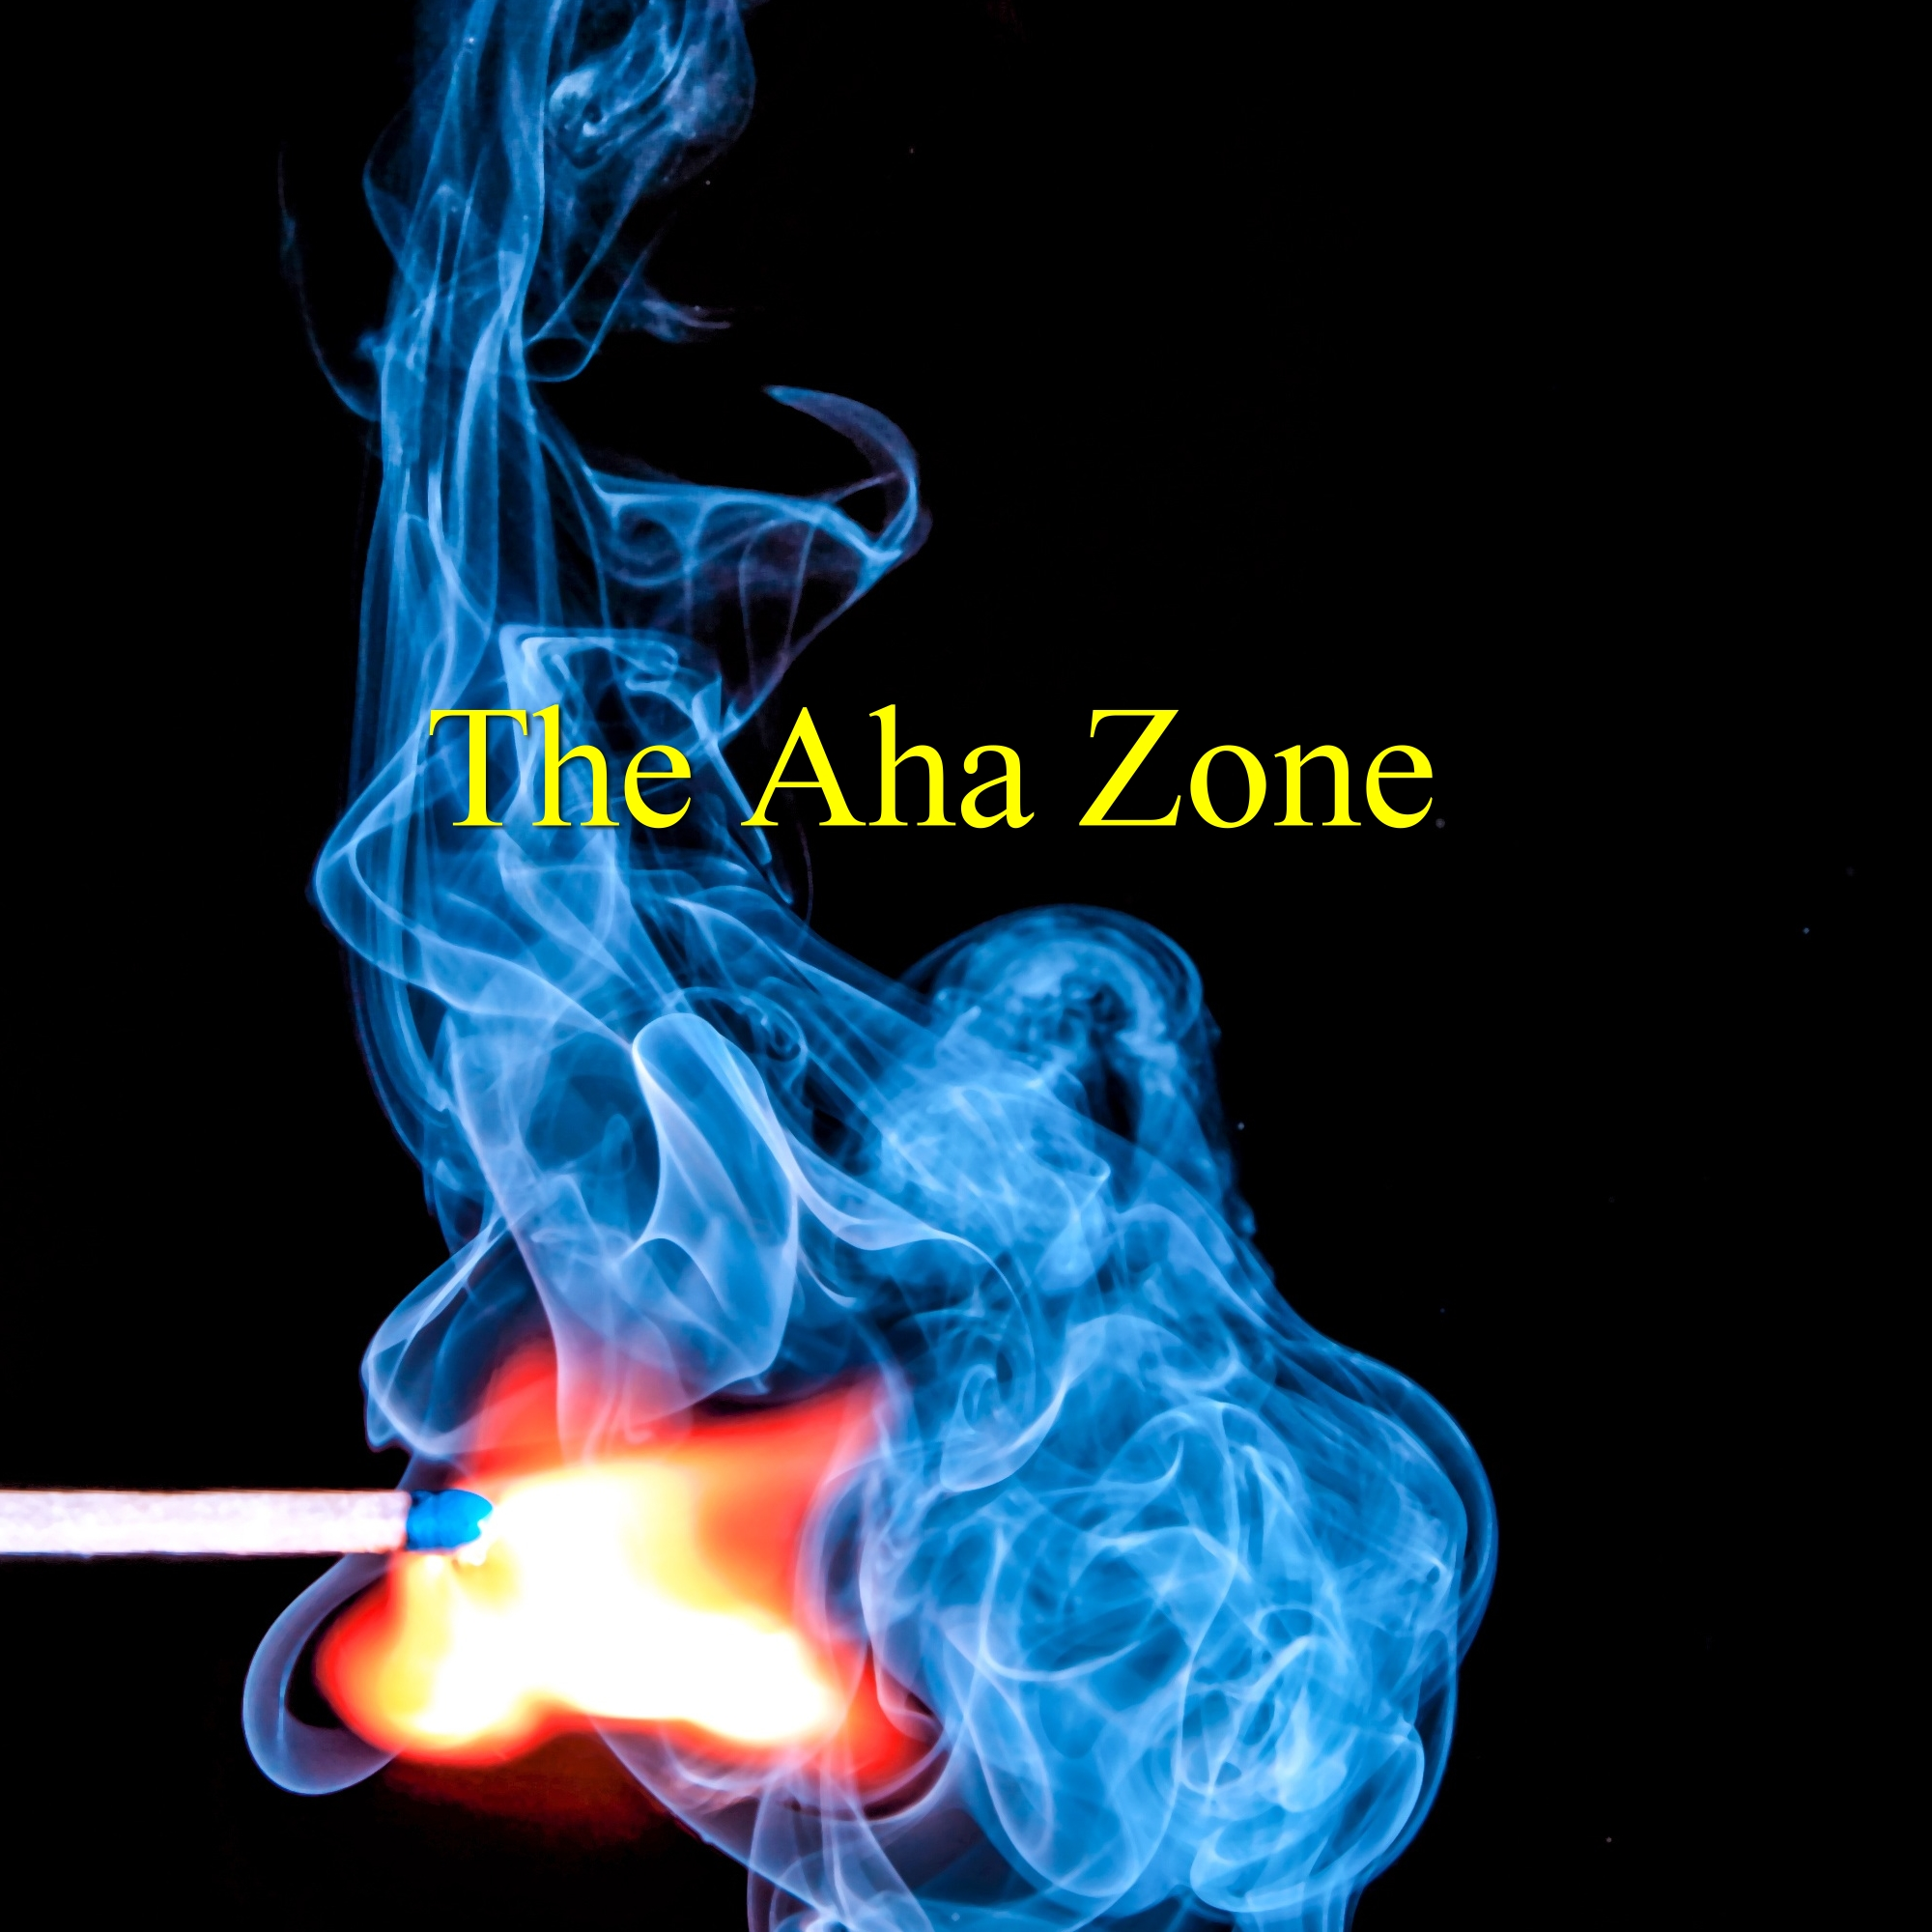 Enjoy The Aha Zone